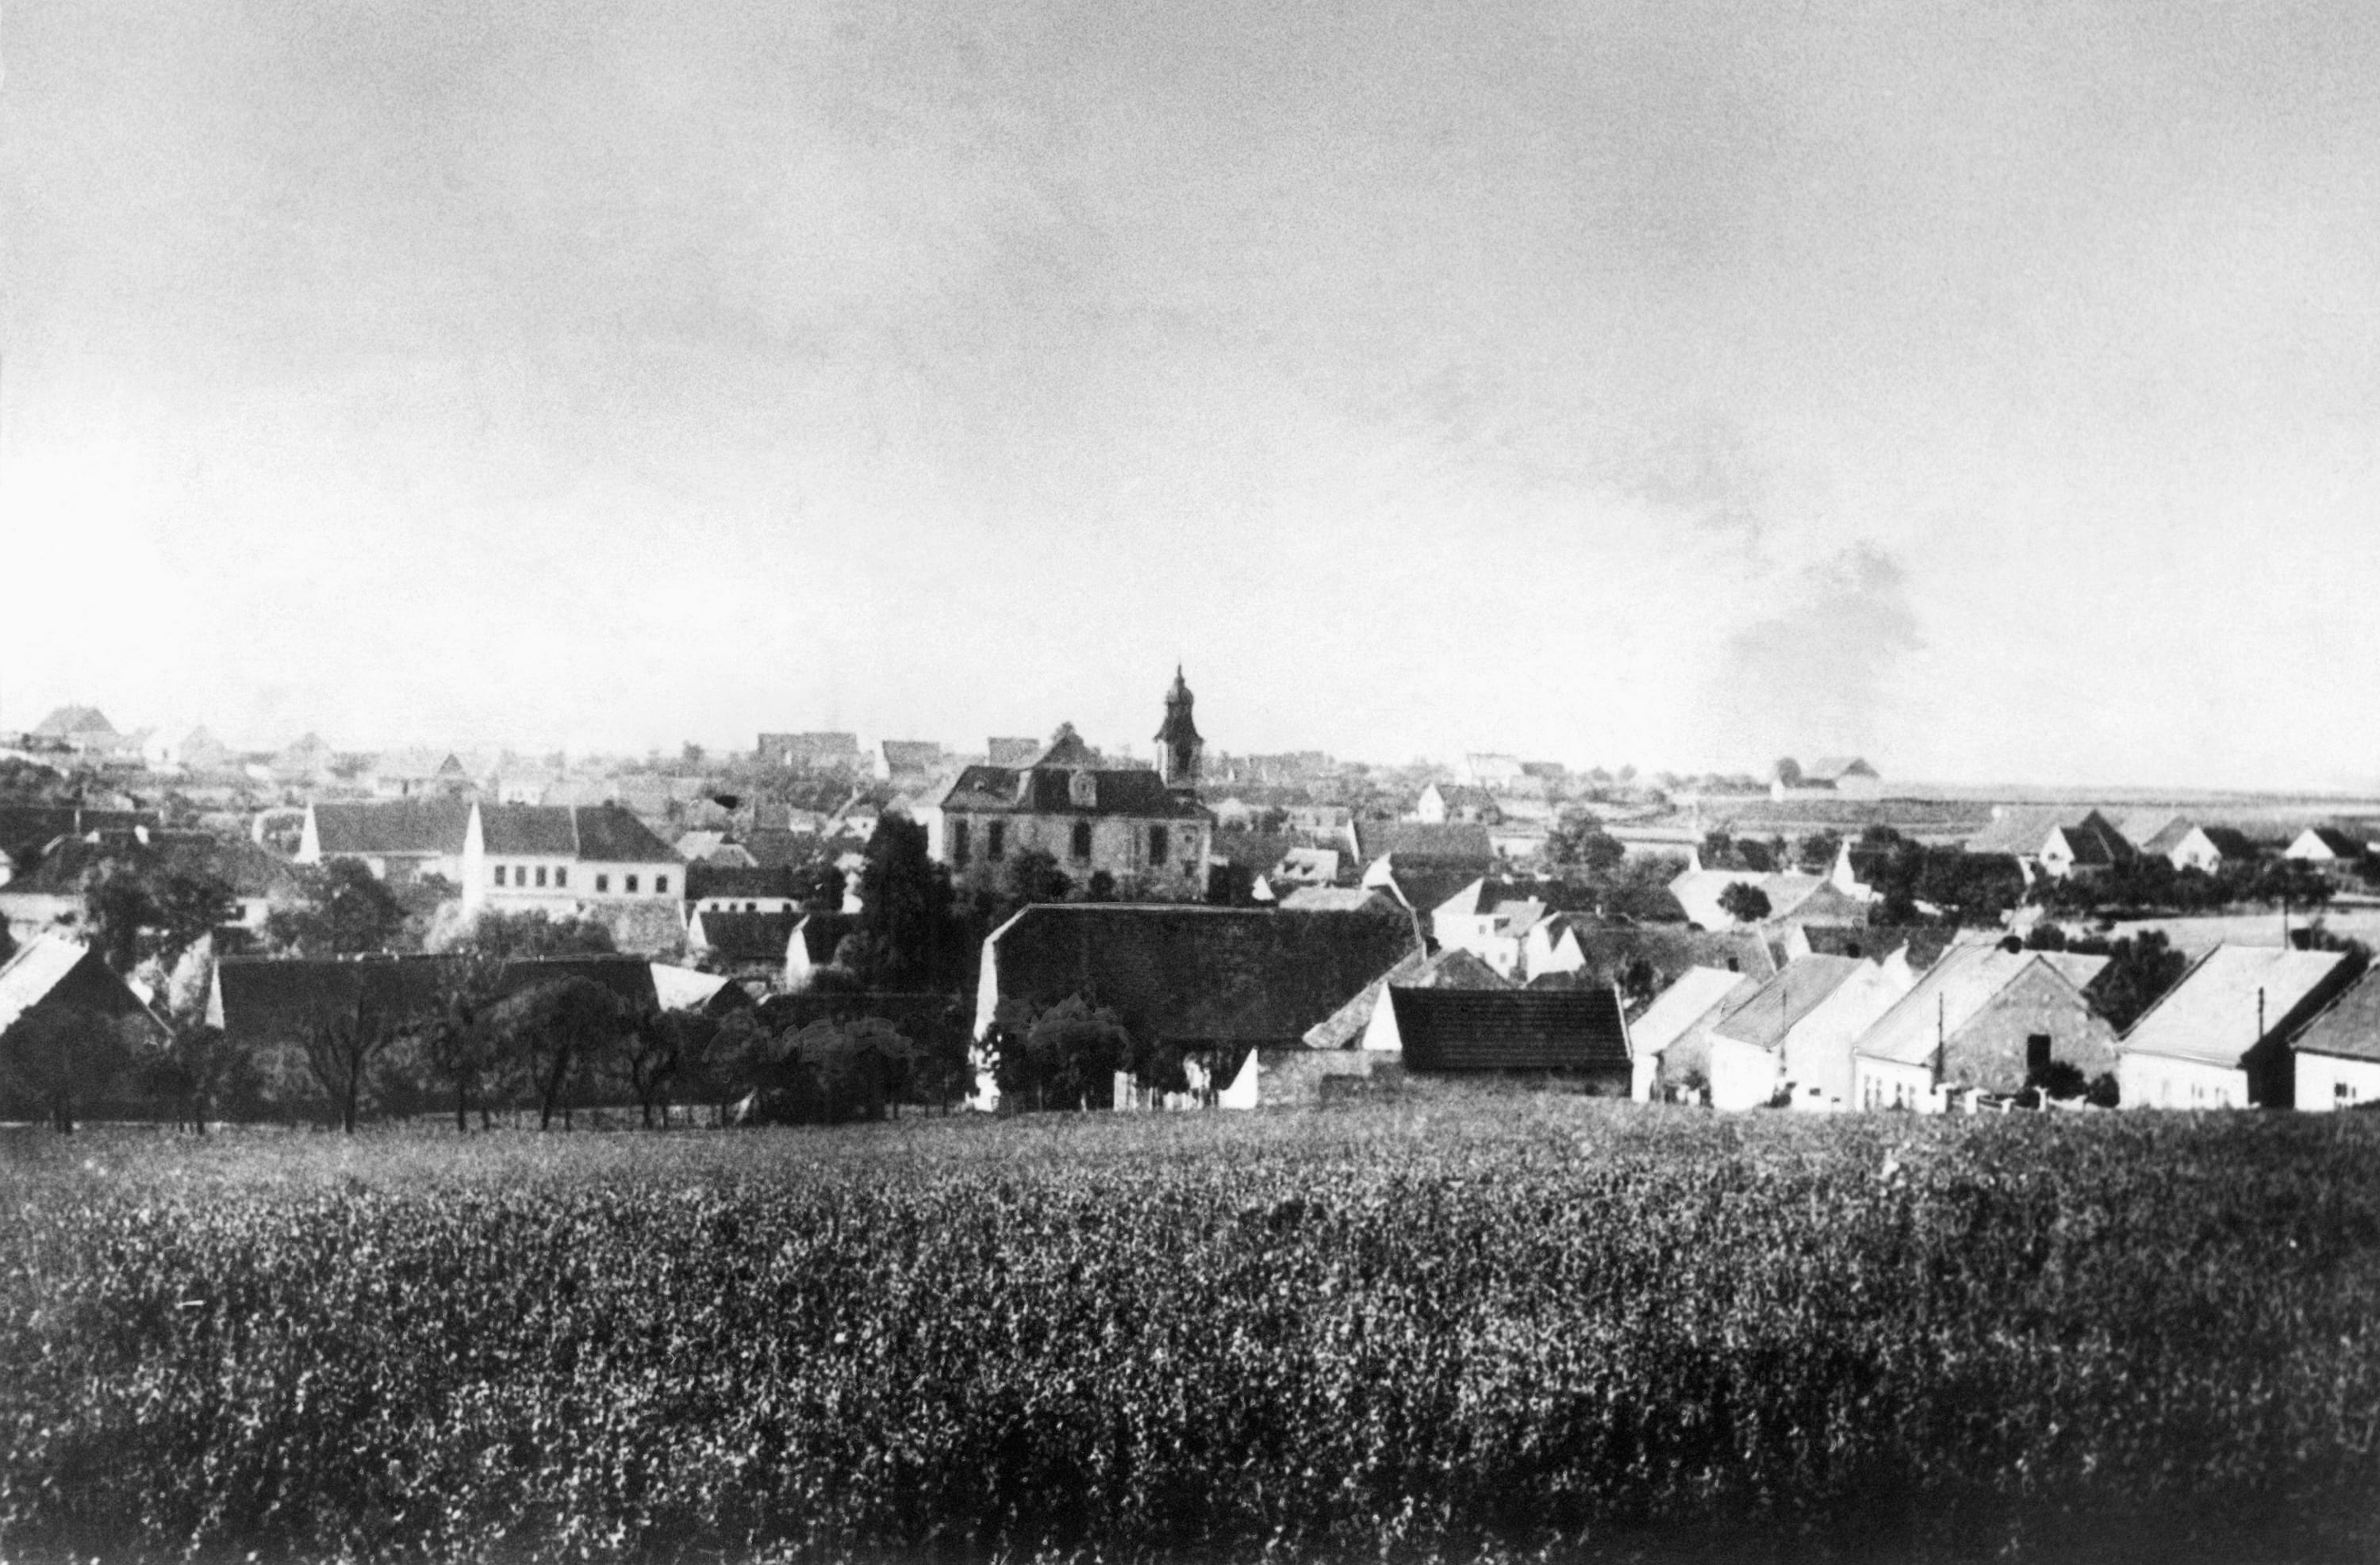 The village of Lidice, Czechoslovakia, before it was burned to the ground by Nazis on June 10, 1942. Very few escaped the massacre, which was an effort to dig out a group of Czech resistance fighters. (AP Photo/Czech News Agency)